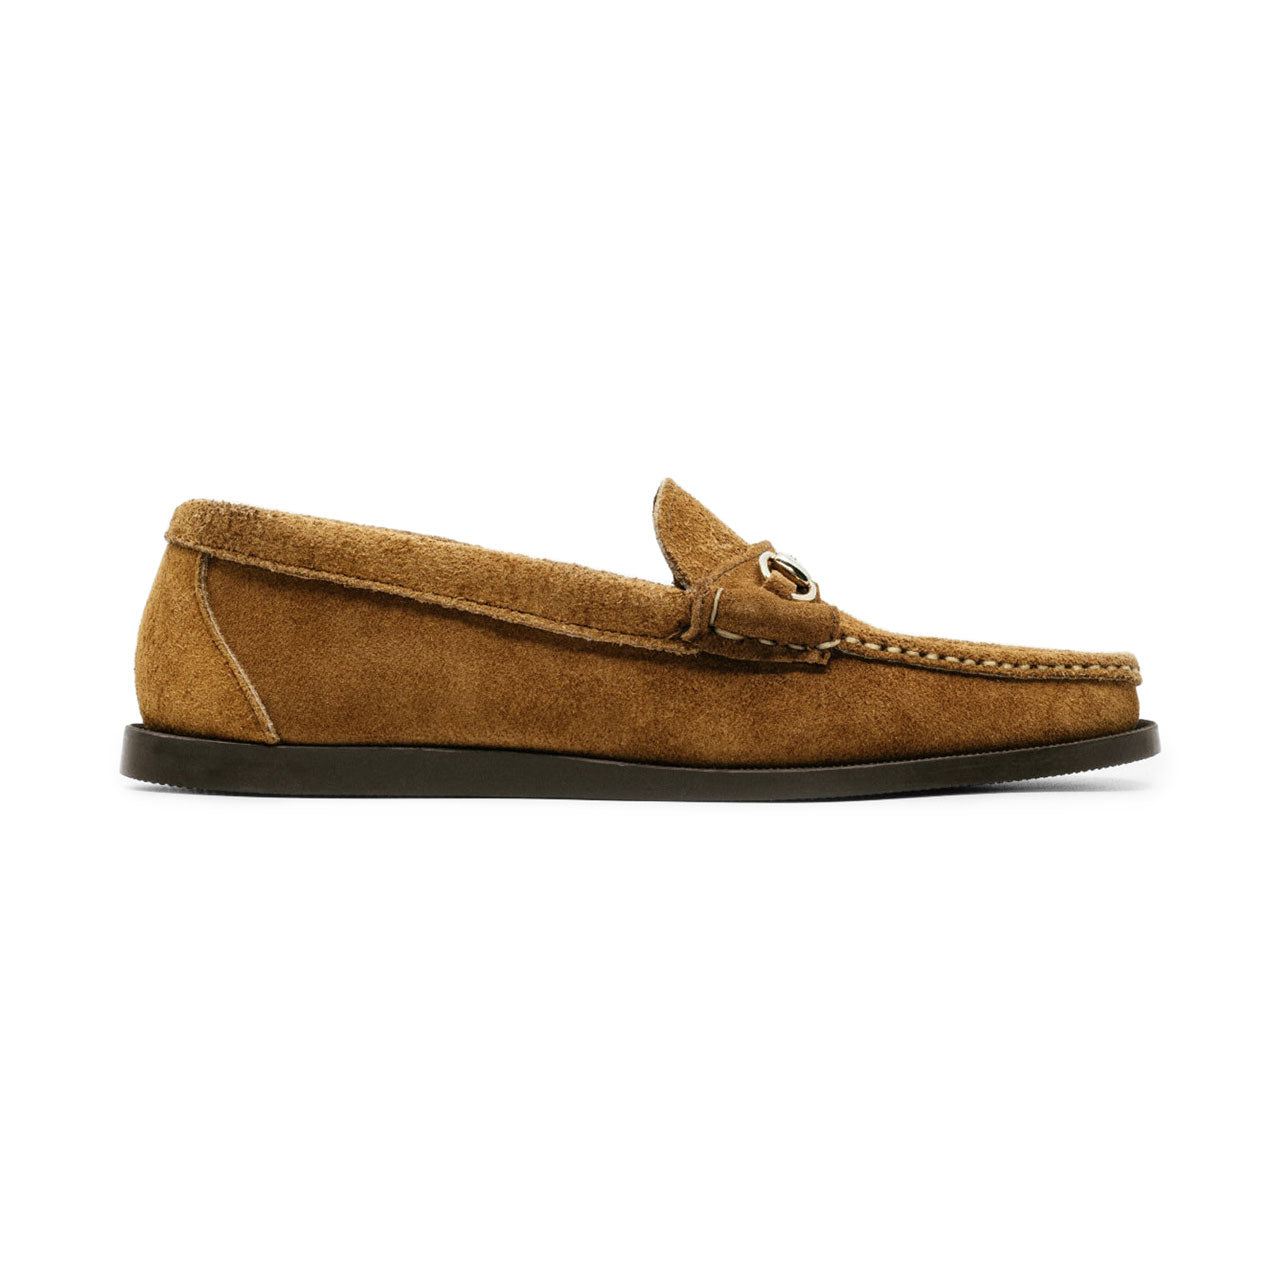 Oak Street Camp Sole Bit Moc